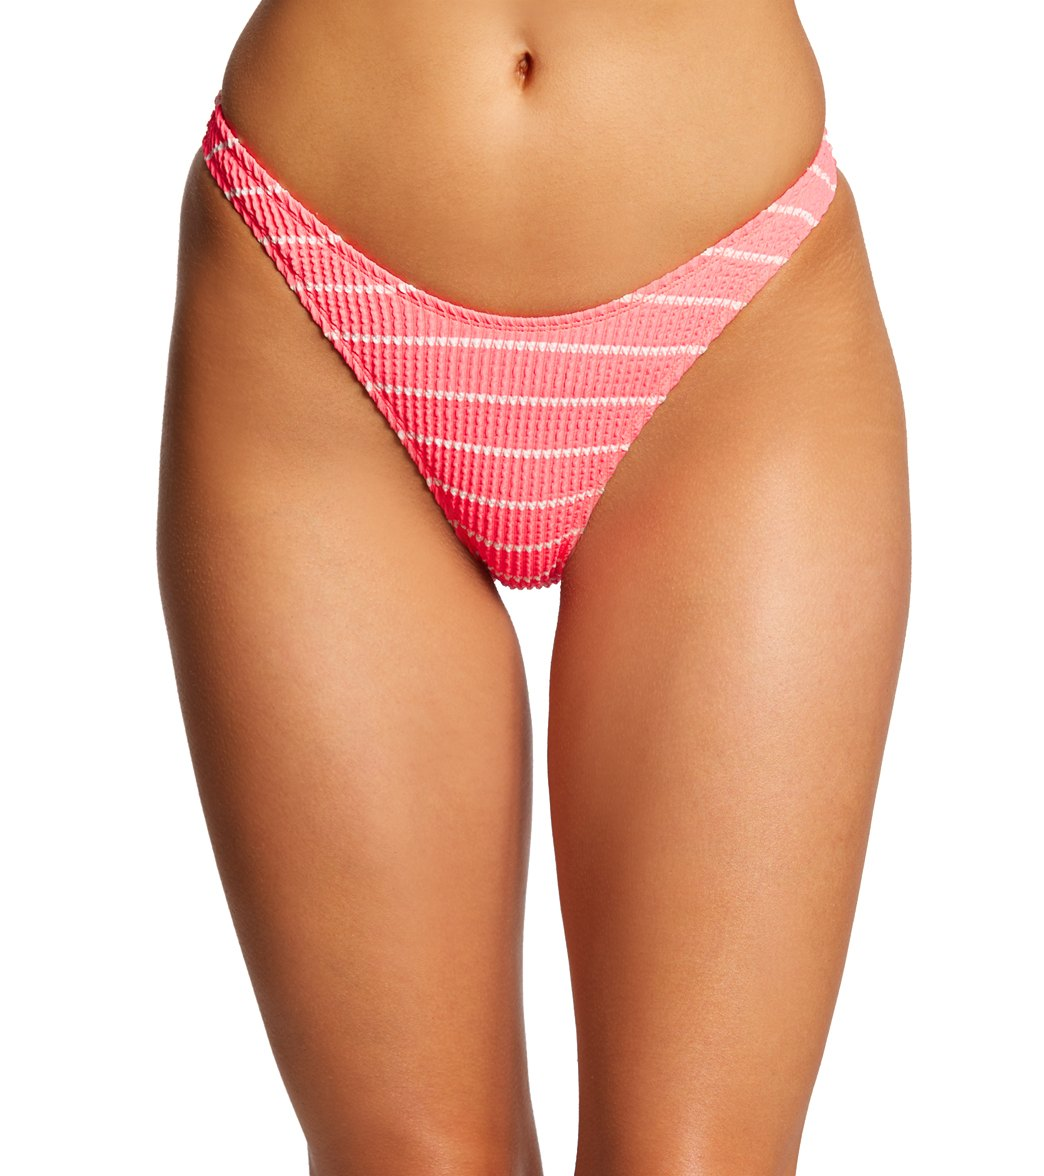 0169ecca84b Body Glove Vogue I'm Too Sexy High Hip Bikini Bottom